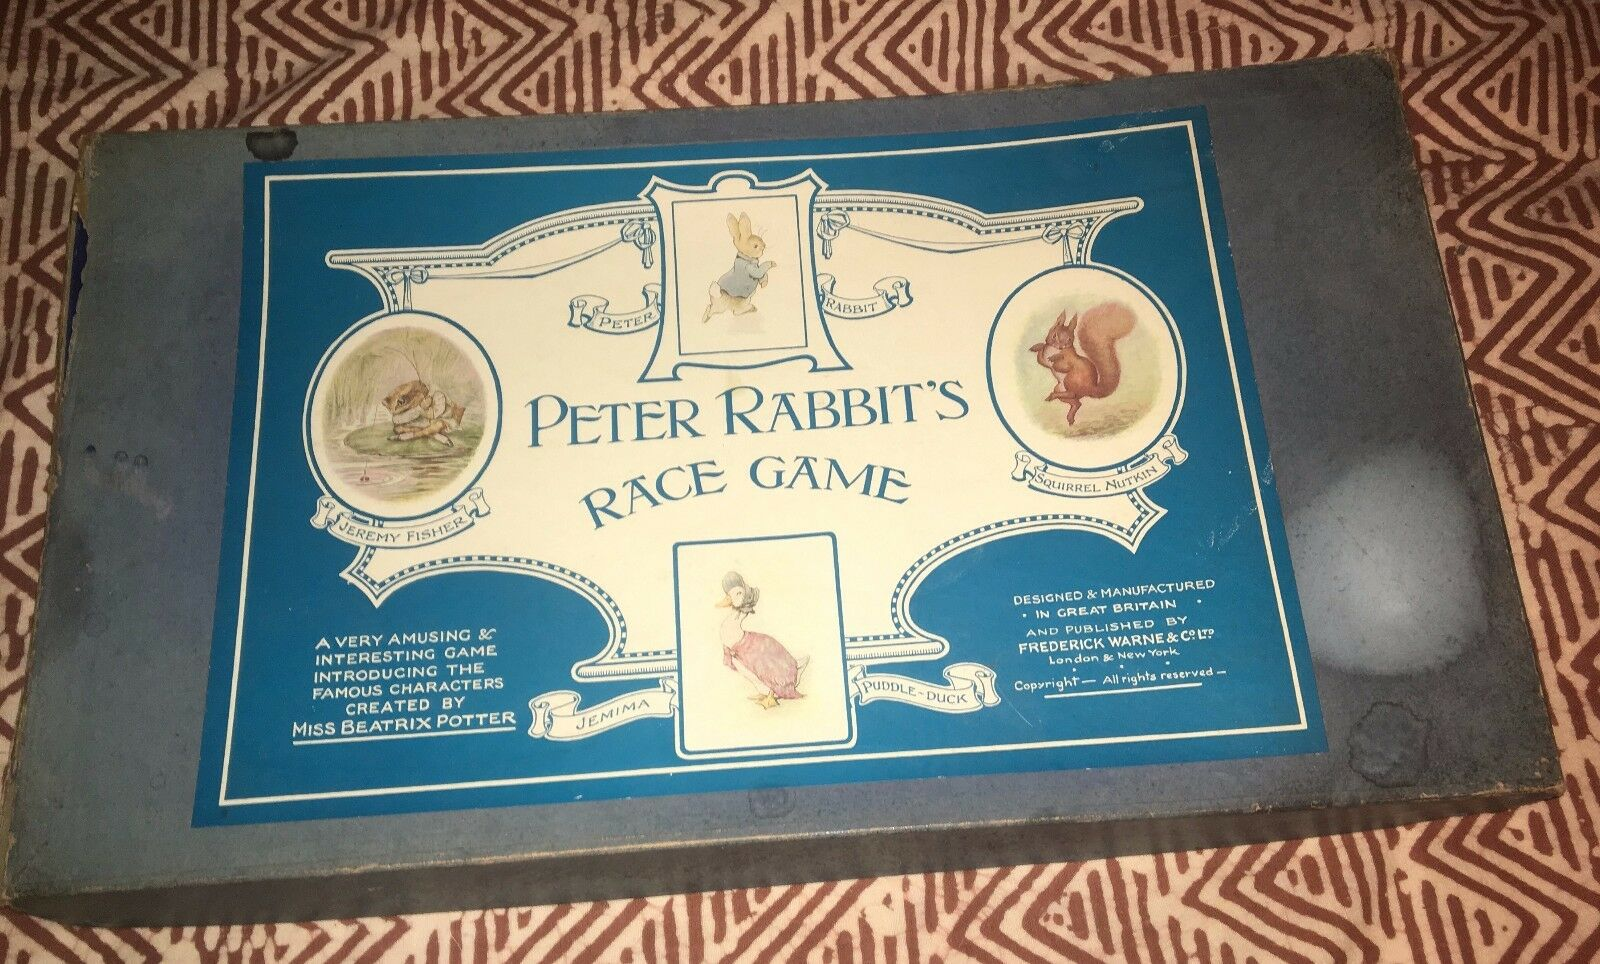 Vintage Peter Rabbit's Race Game - Lead figurines ca. 1930-1945